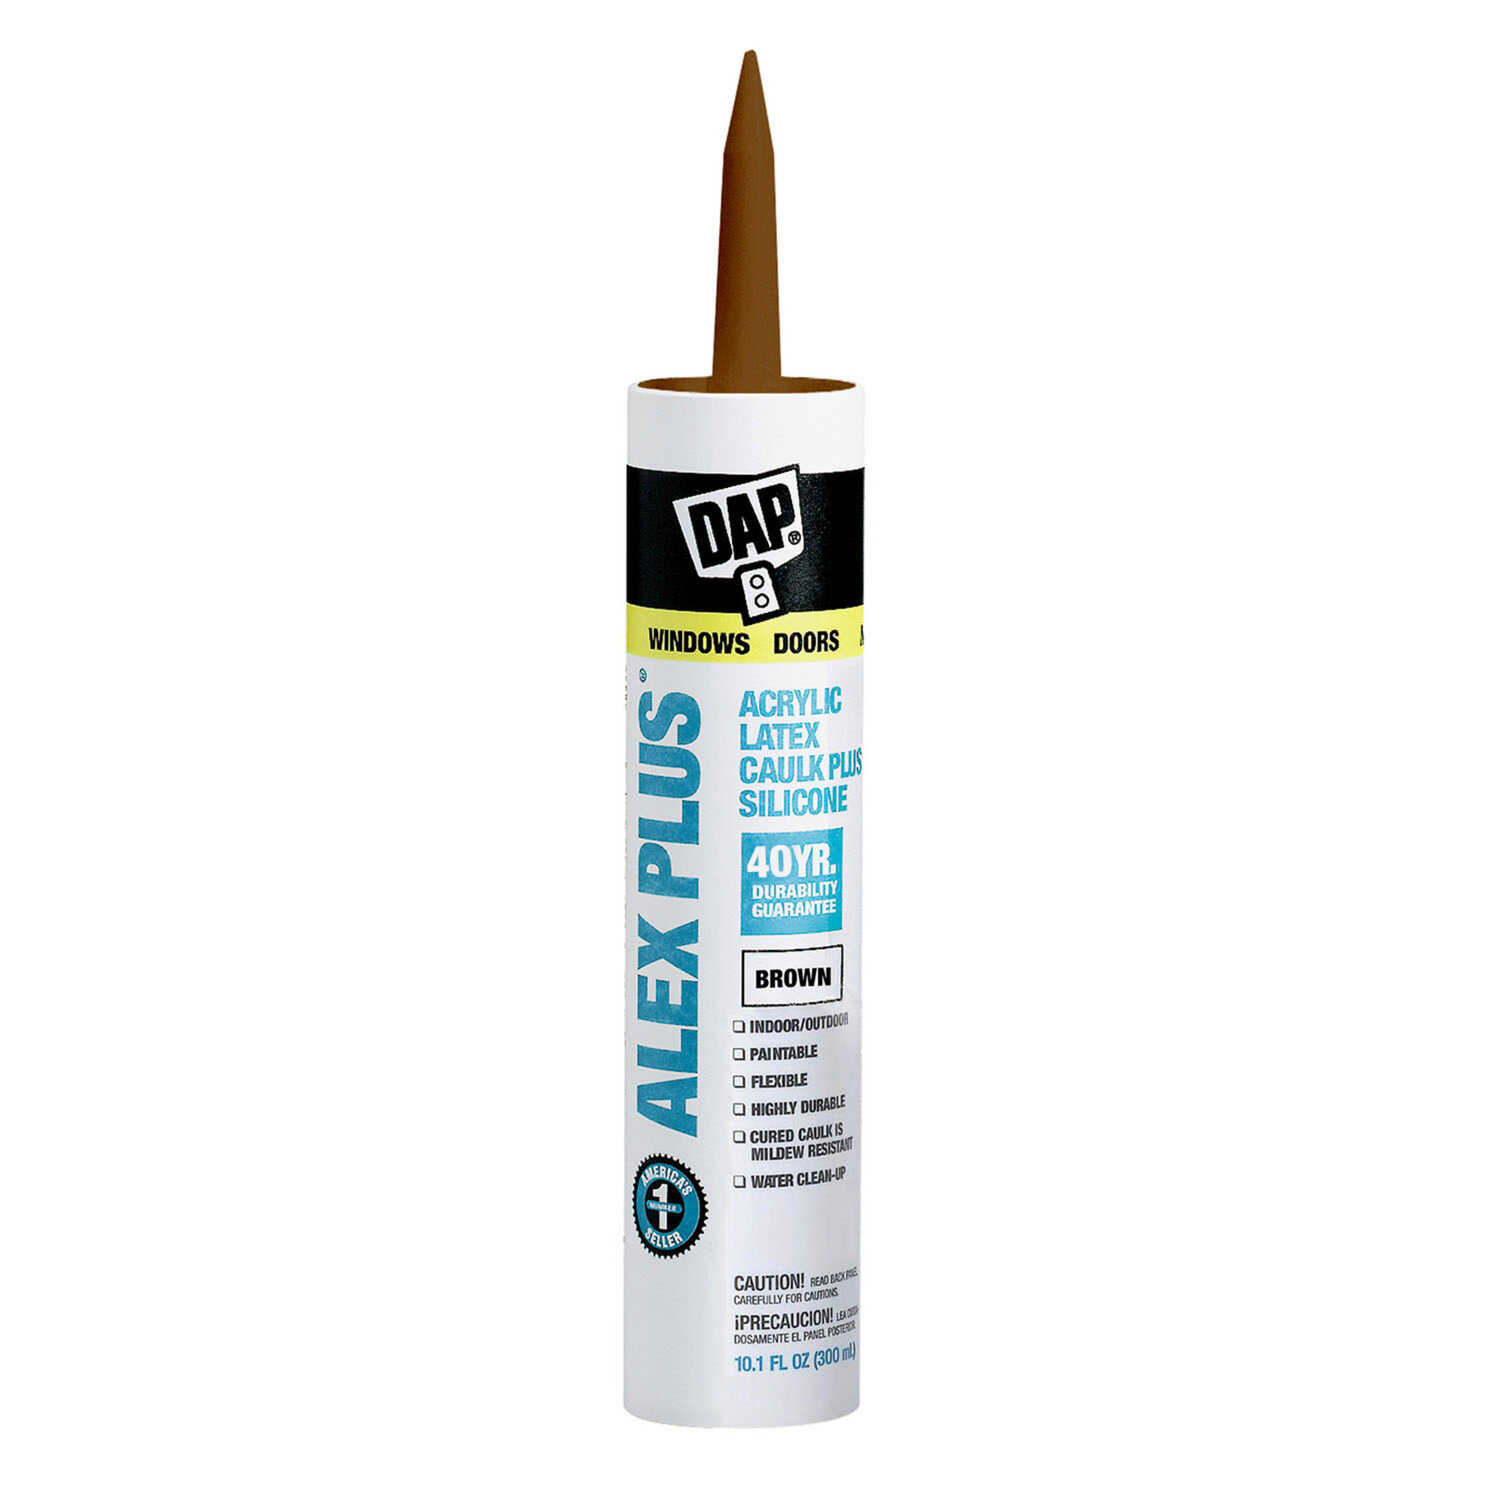 Dap  Alex Plus  Brown  Acrylic Latex  All Purpose  Caulk  10.1 oz.